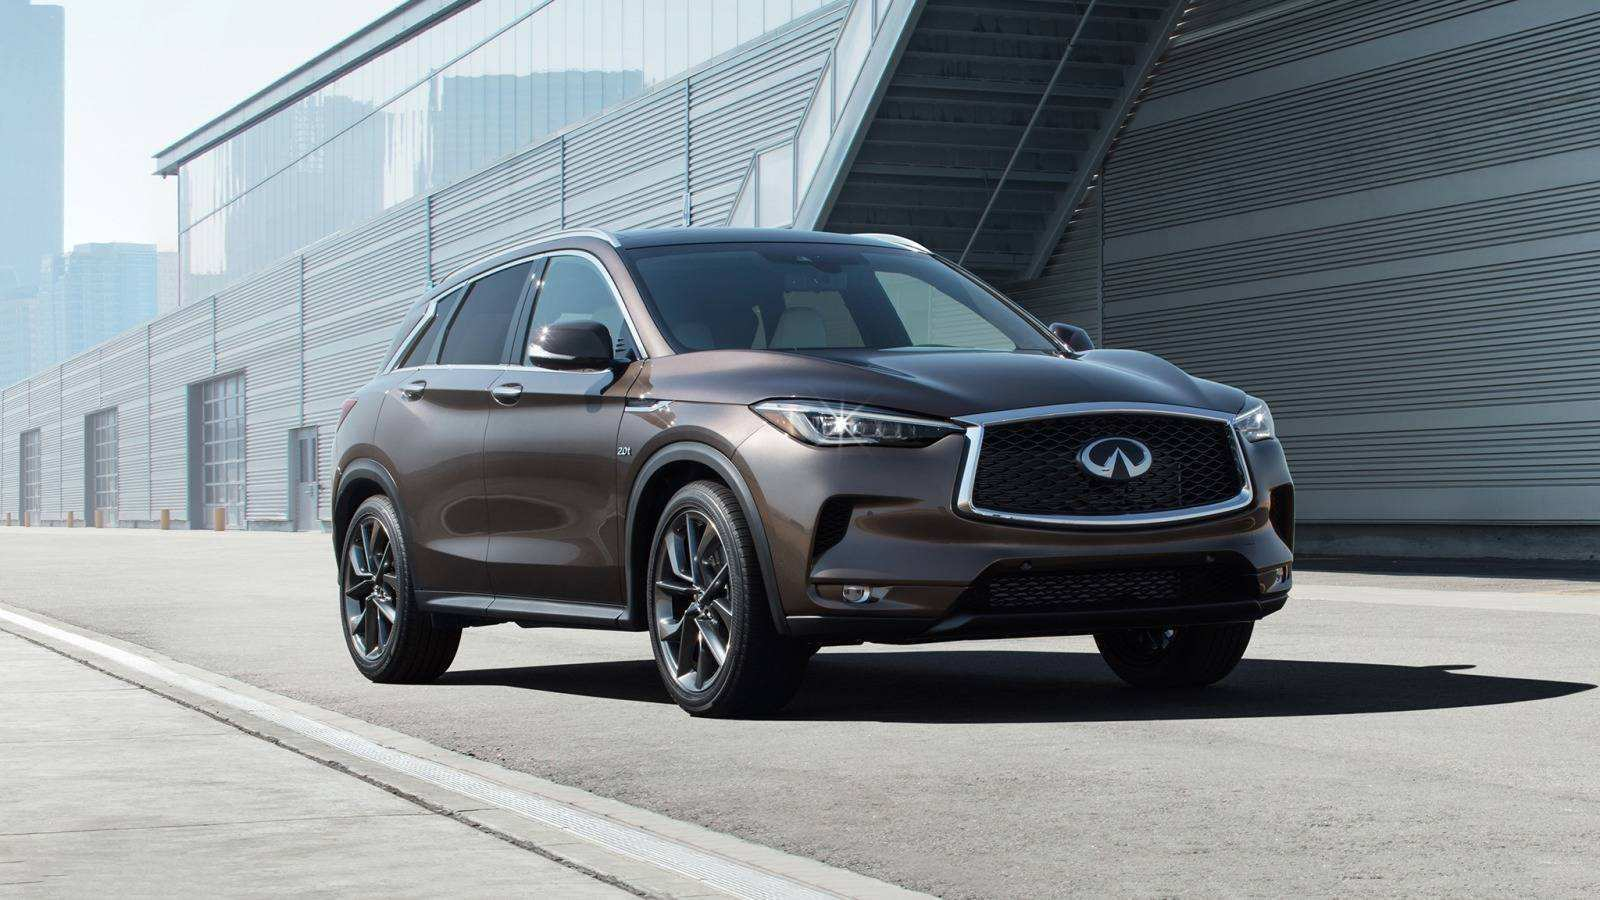 89 New 2019 Infiniti Crossover Exterior and Interior with 2019 Infiniti Crossover